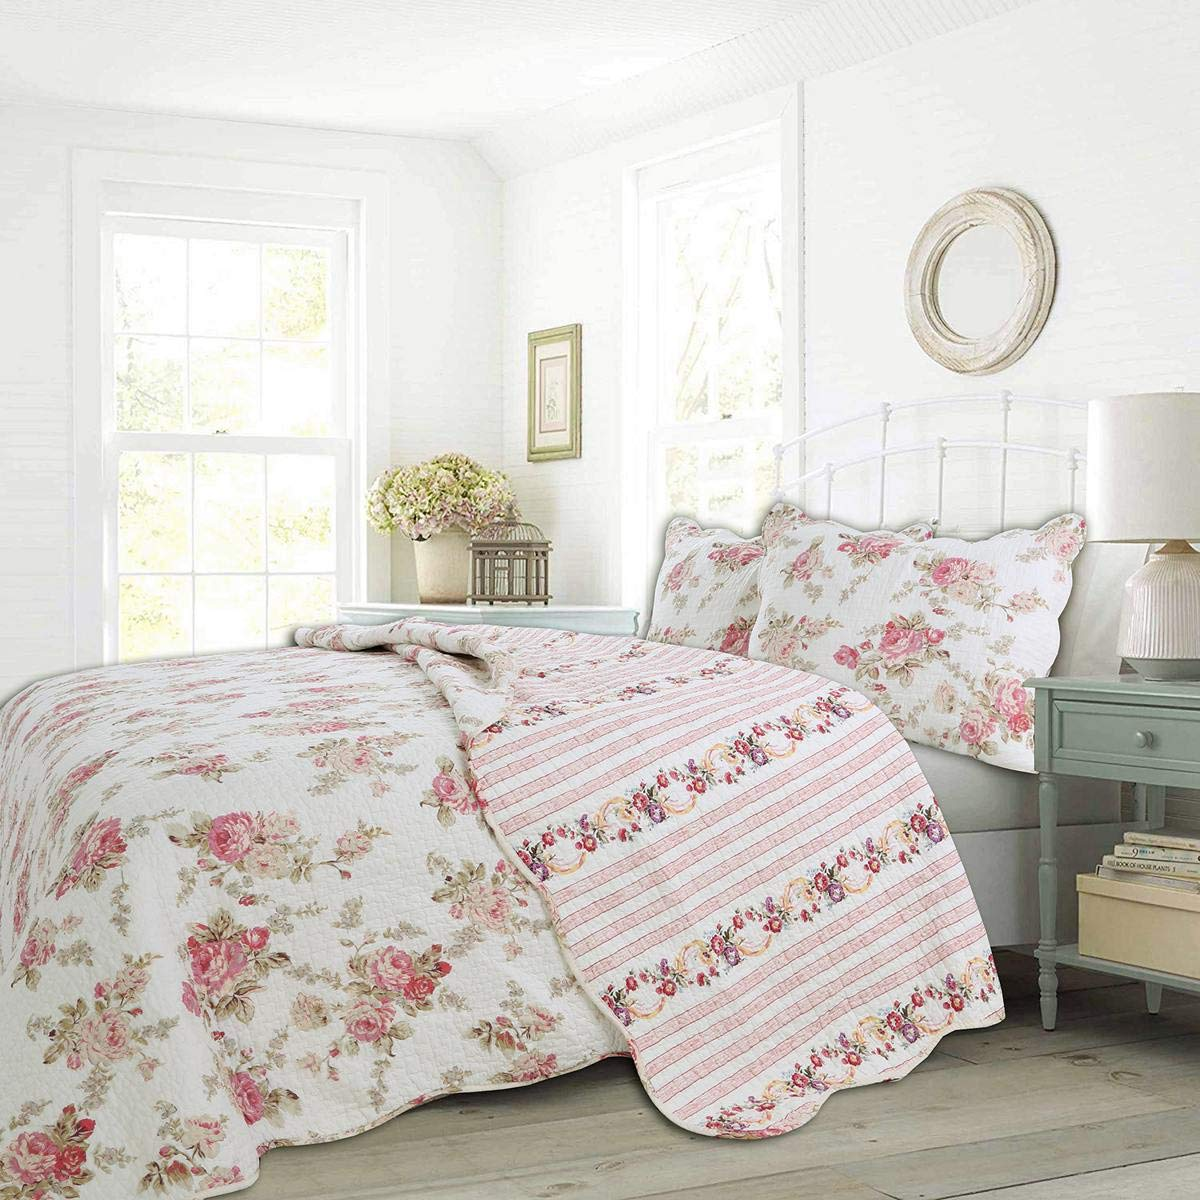 Cozy Line Home Fashions Romantic Pink Peony Flora Cotton Reversible Quilt Bedding Set, Coverlet, Bedspread (Pink Peony, Queen - 3 Piece)